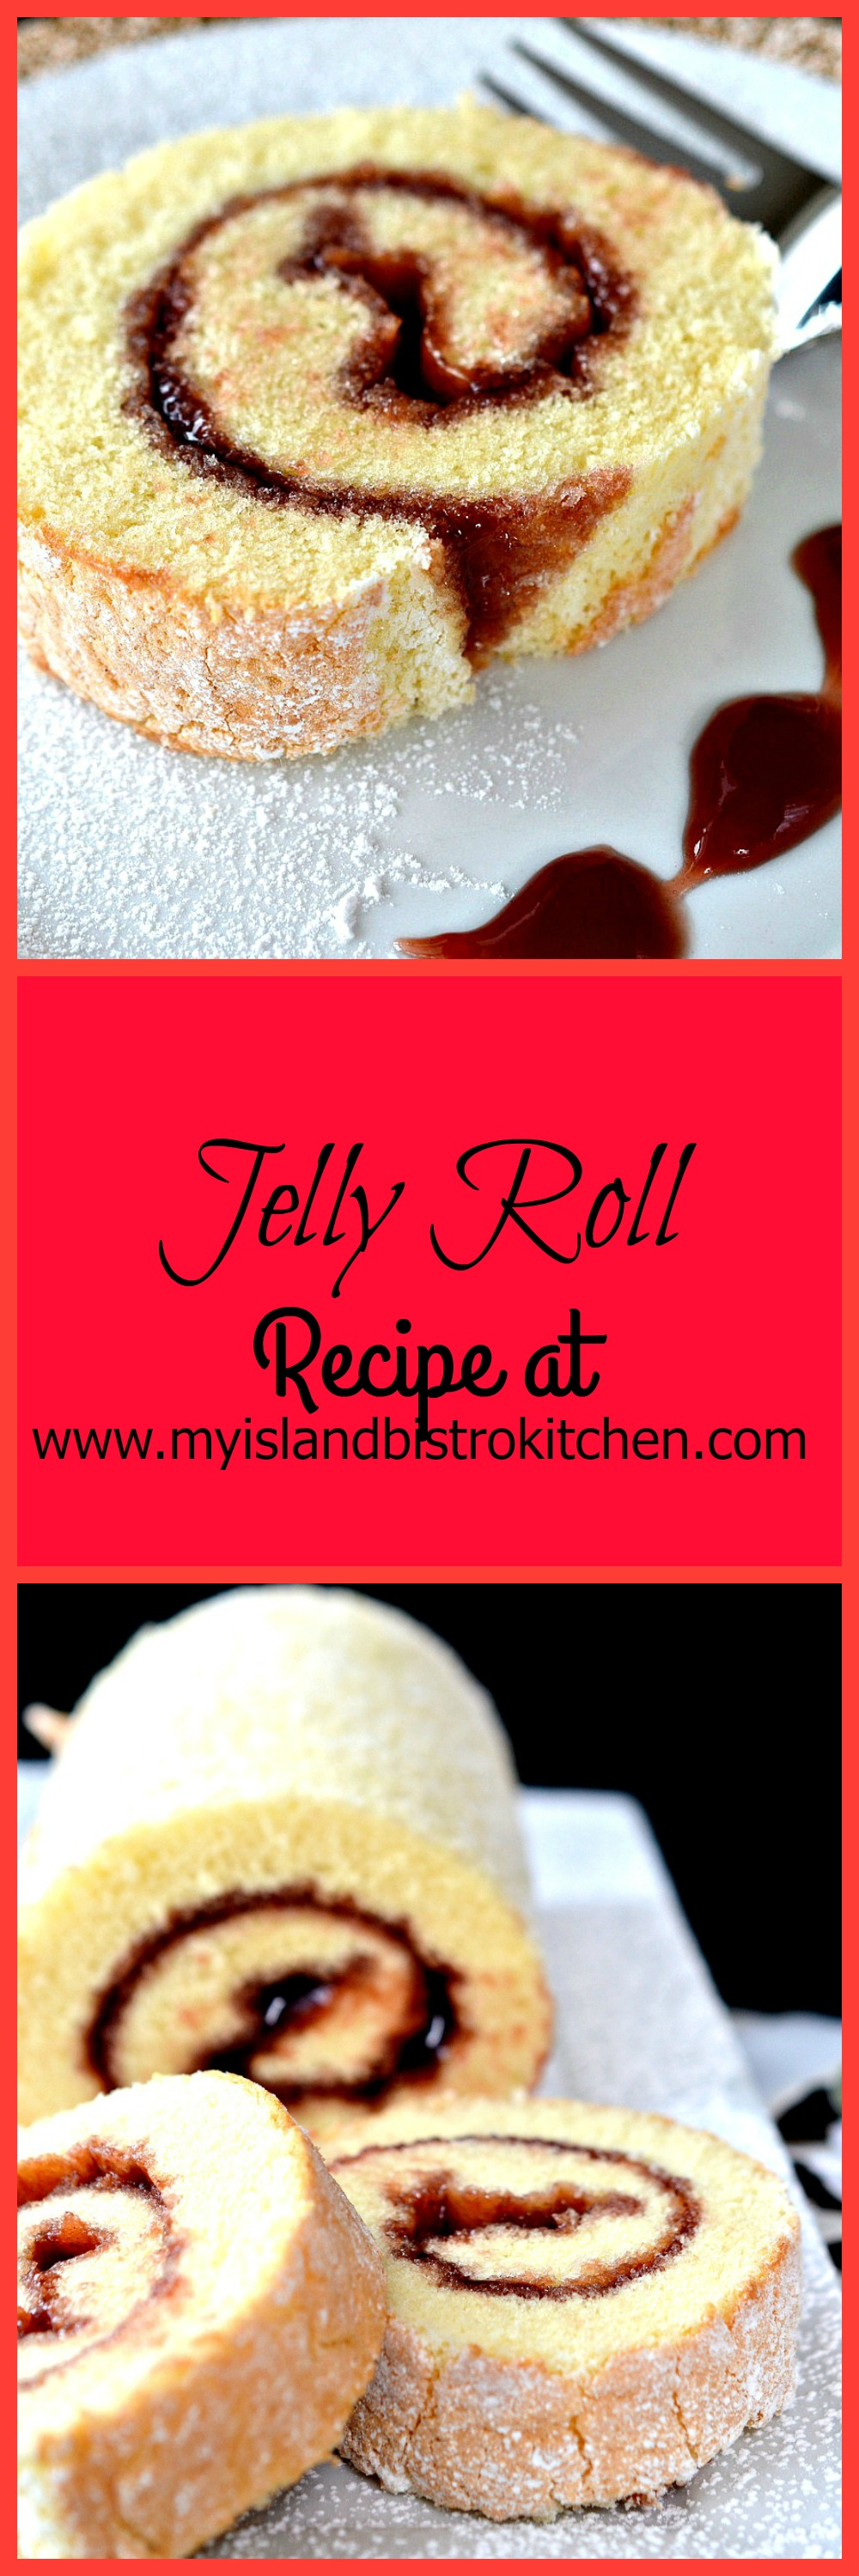 Jelly Roll - Yummy sponge cake with a red jelly/jam filling